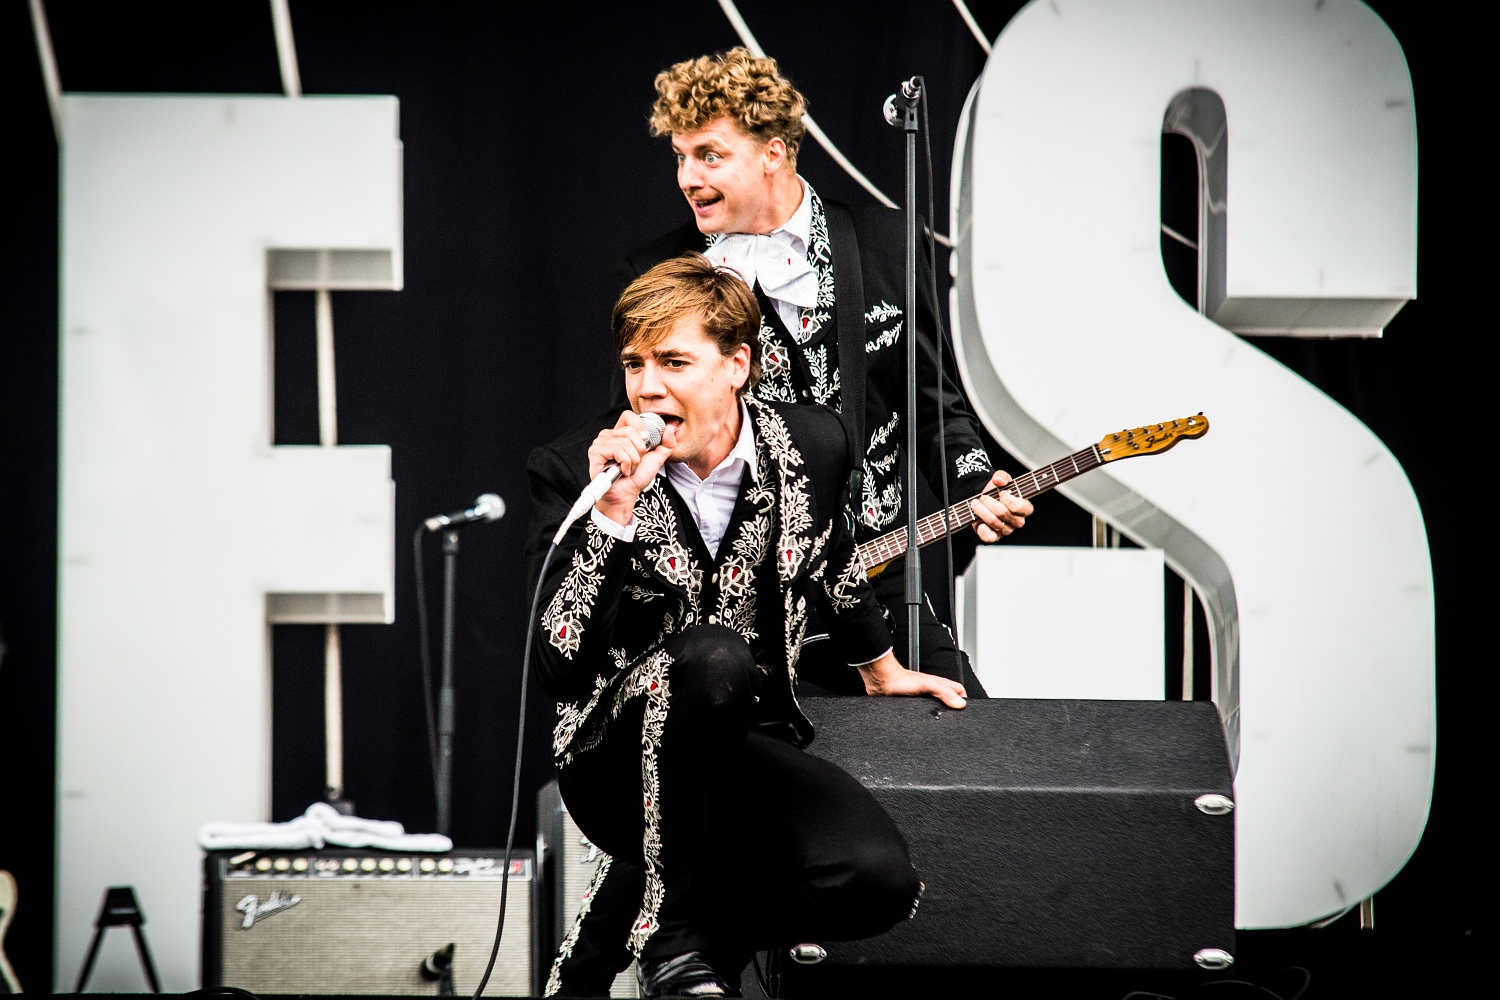 The Hives @ Rock Werchter 2013 (Jan Van den Bulck)